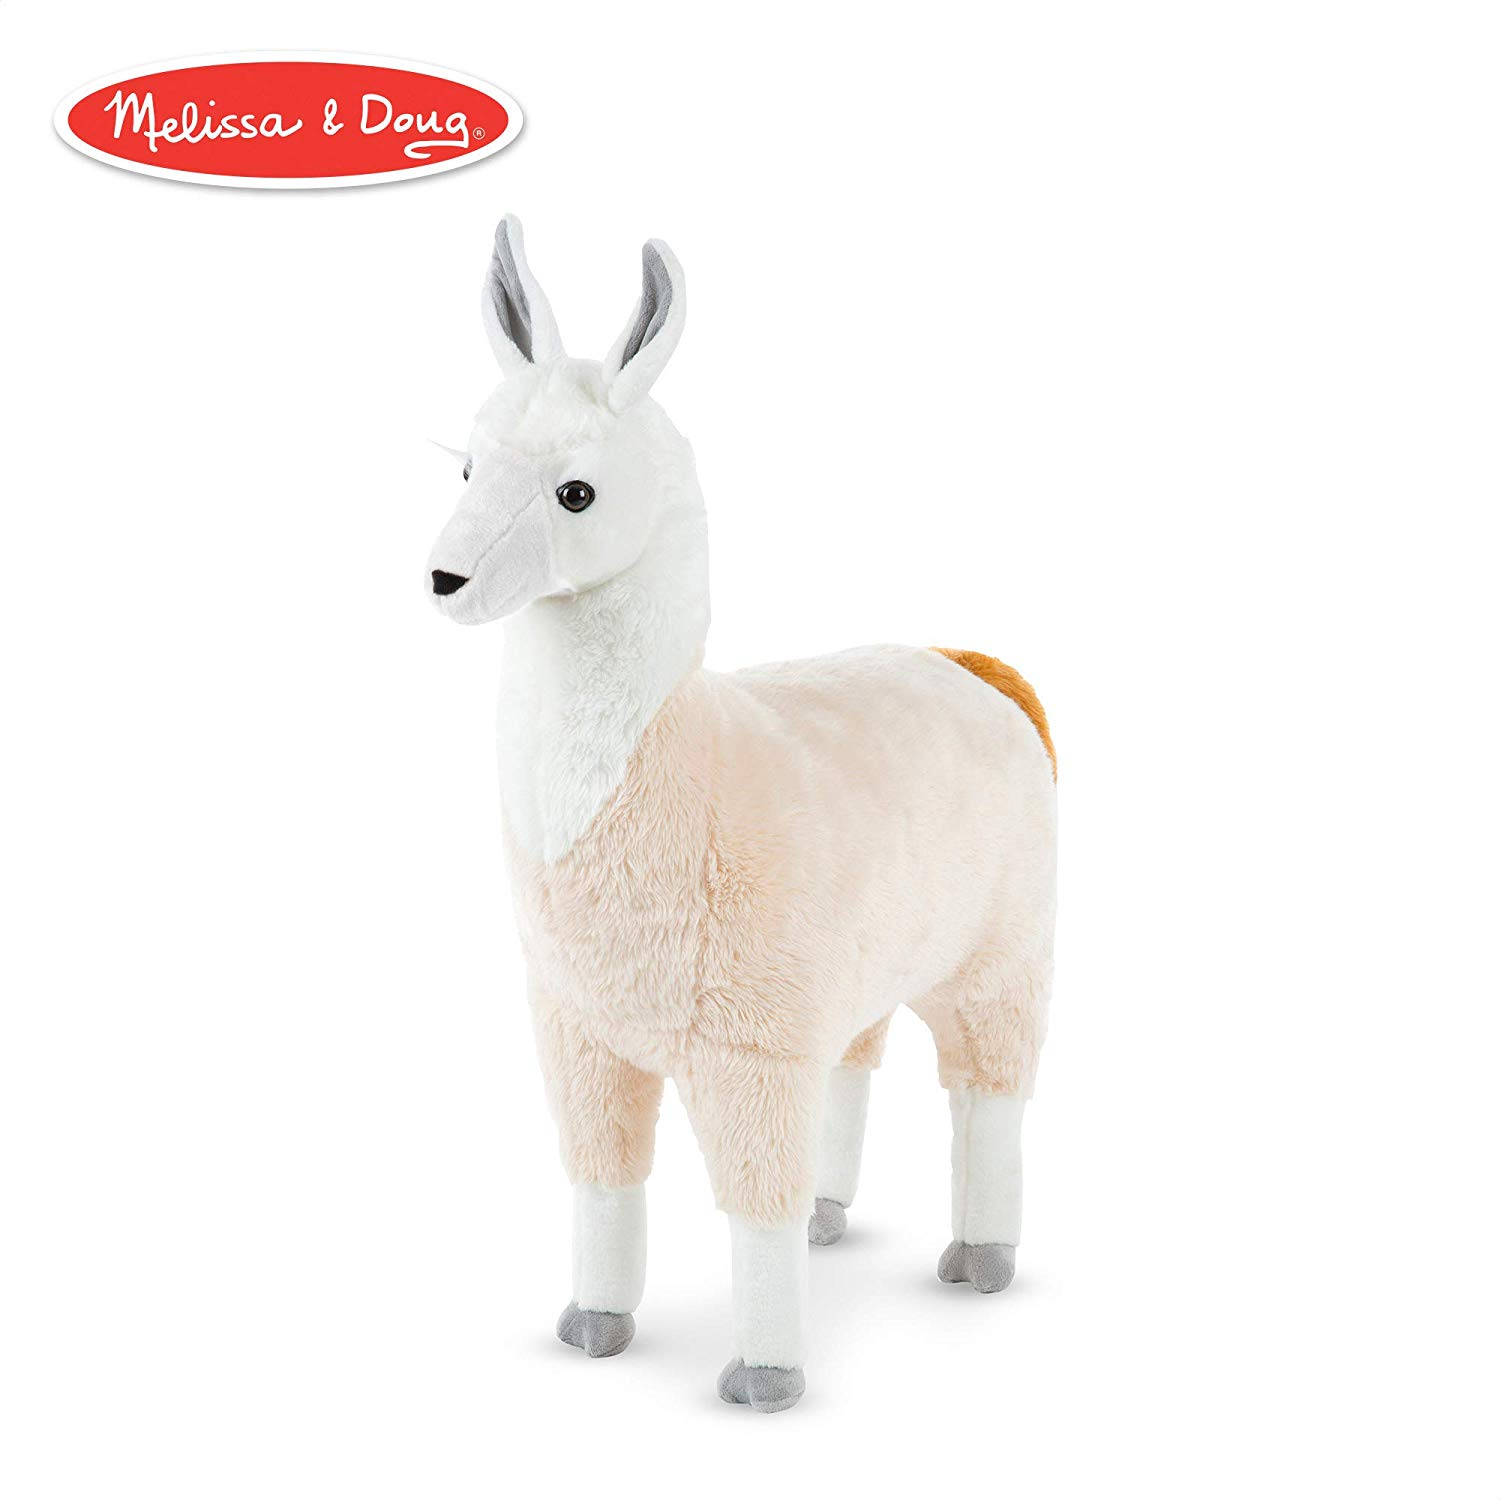 llama alpaca large plush stuffed animal